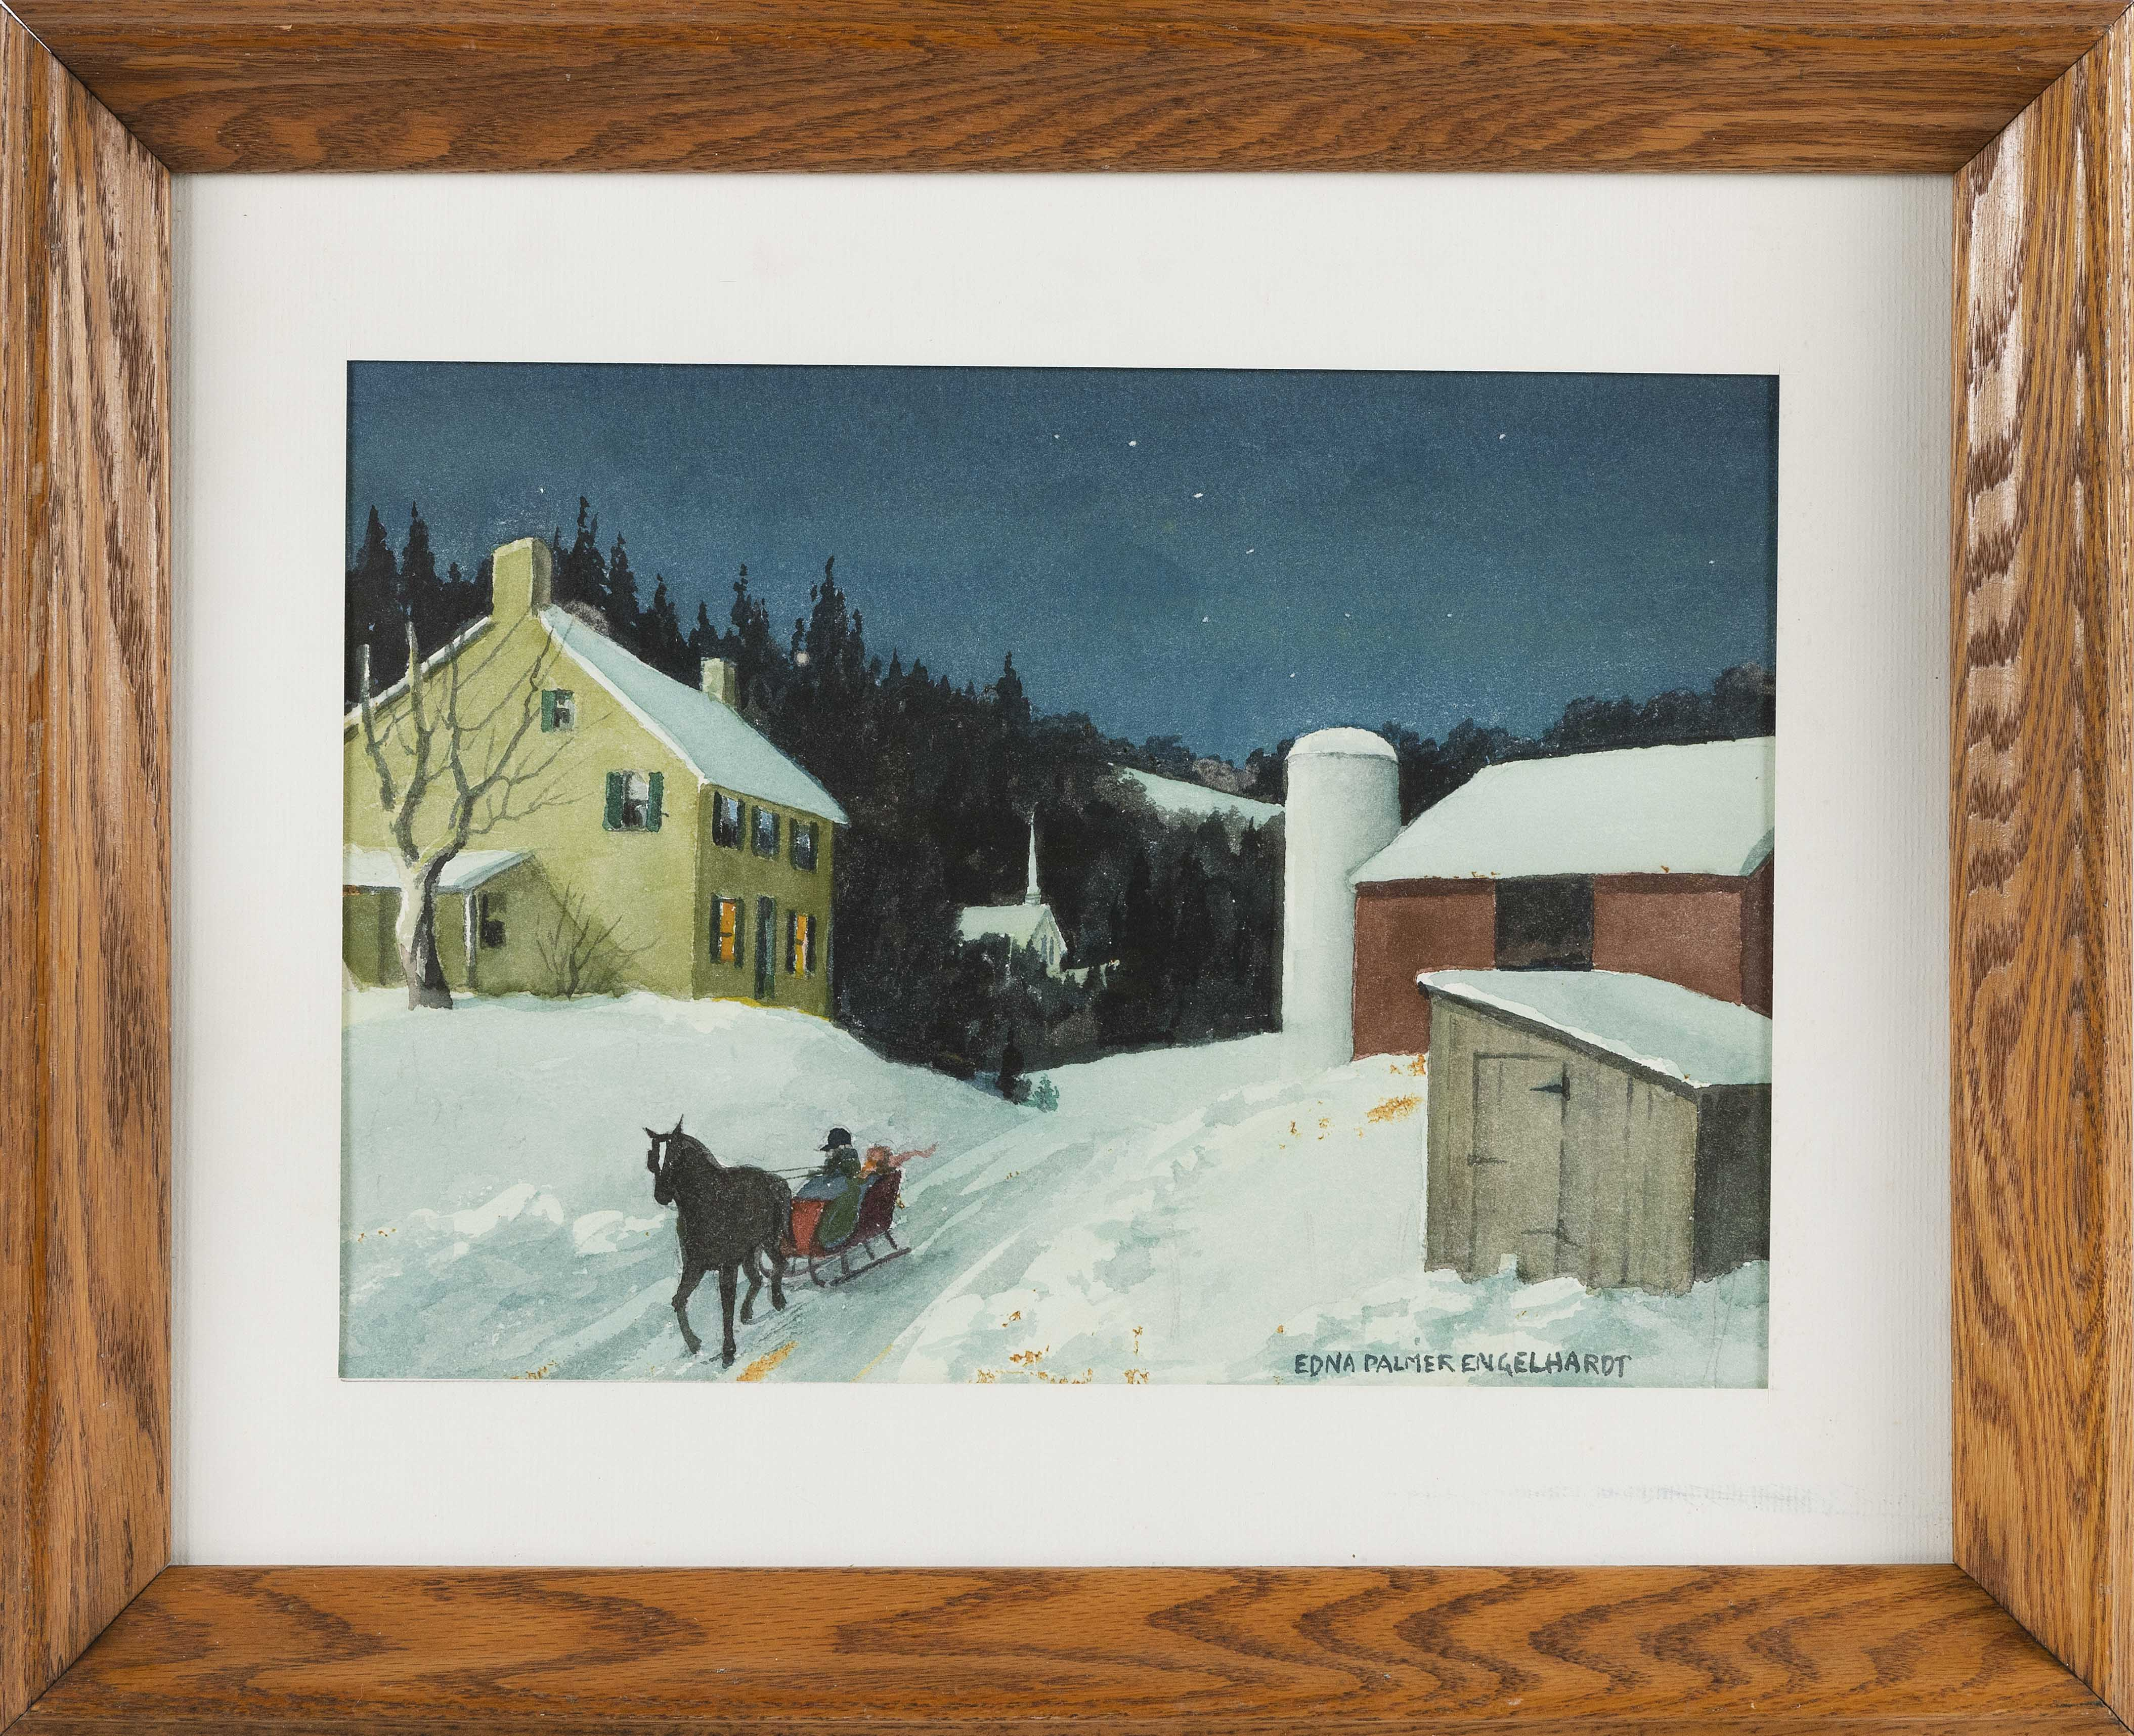 EDNA PALMER ENGELHARDT (New Jersey, 1897-1991), Sleigh ride though a winter town., Watercolor on paper, 10